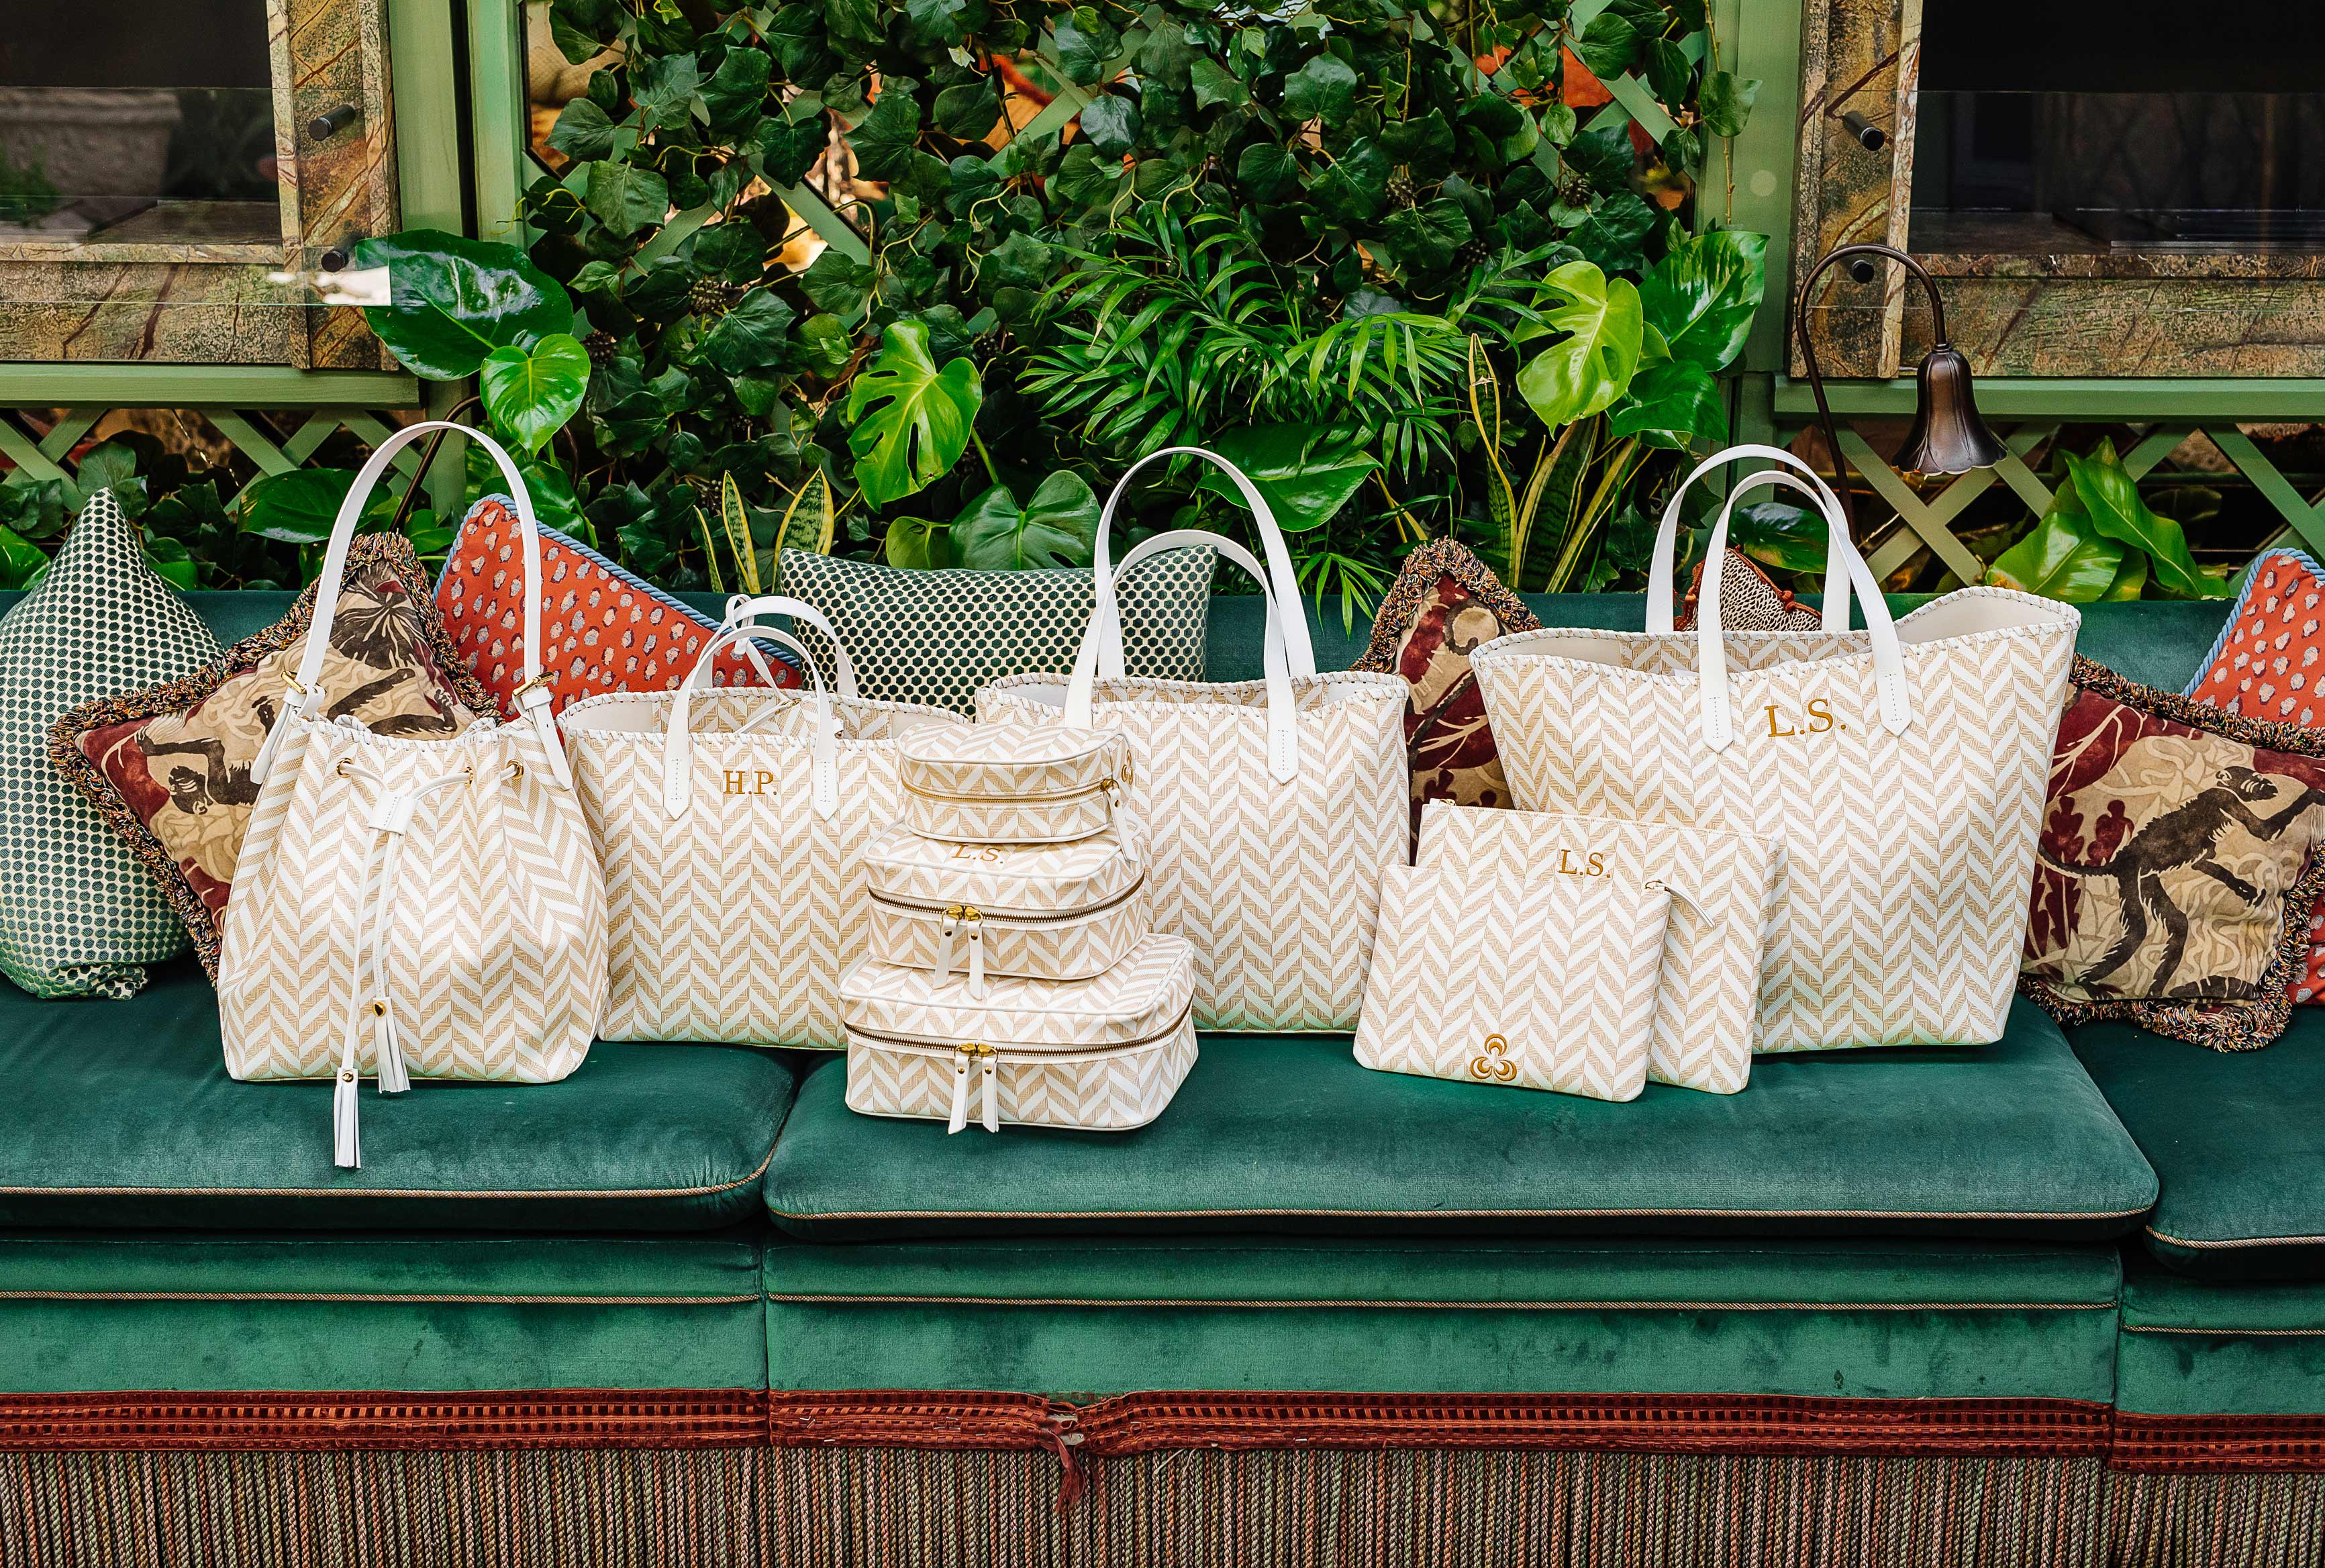 Jet, Set, Go! Luxury Accessories Brand Misela Collaborates With Annabel's